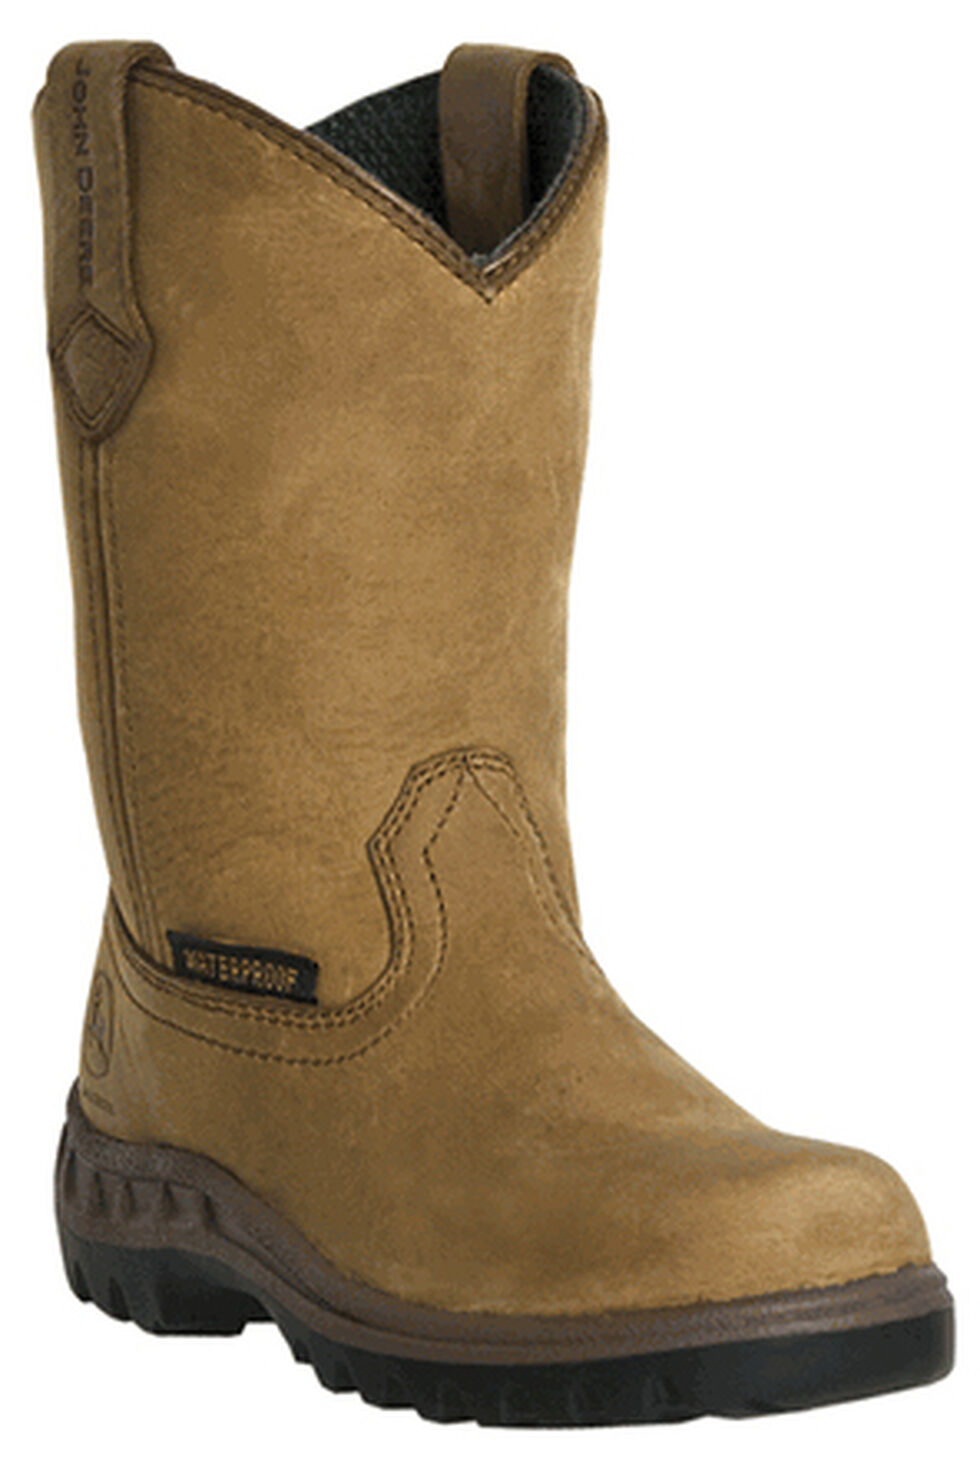 John Deere Youth Boys' Johnny Popper Waterproof Western Boots - Round Toe, Coffee, hi-res